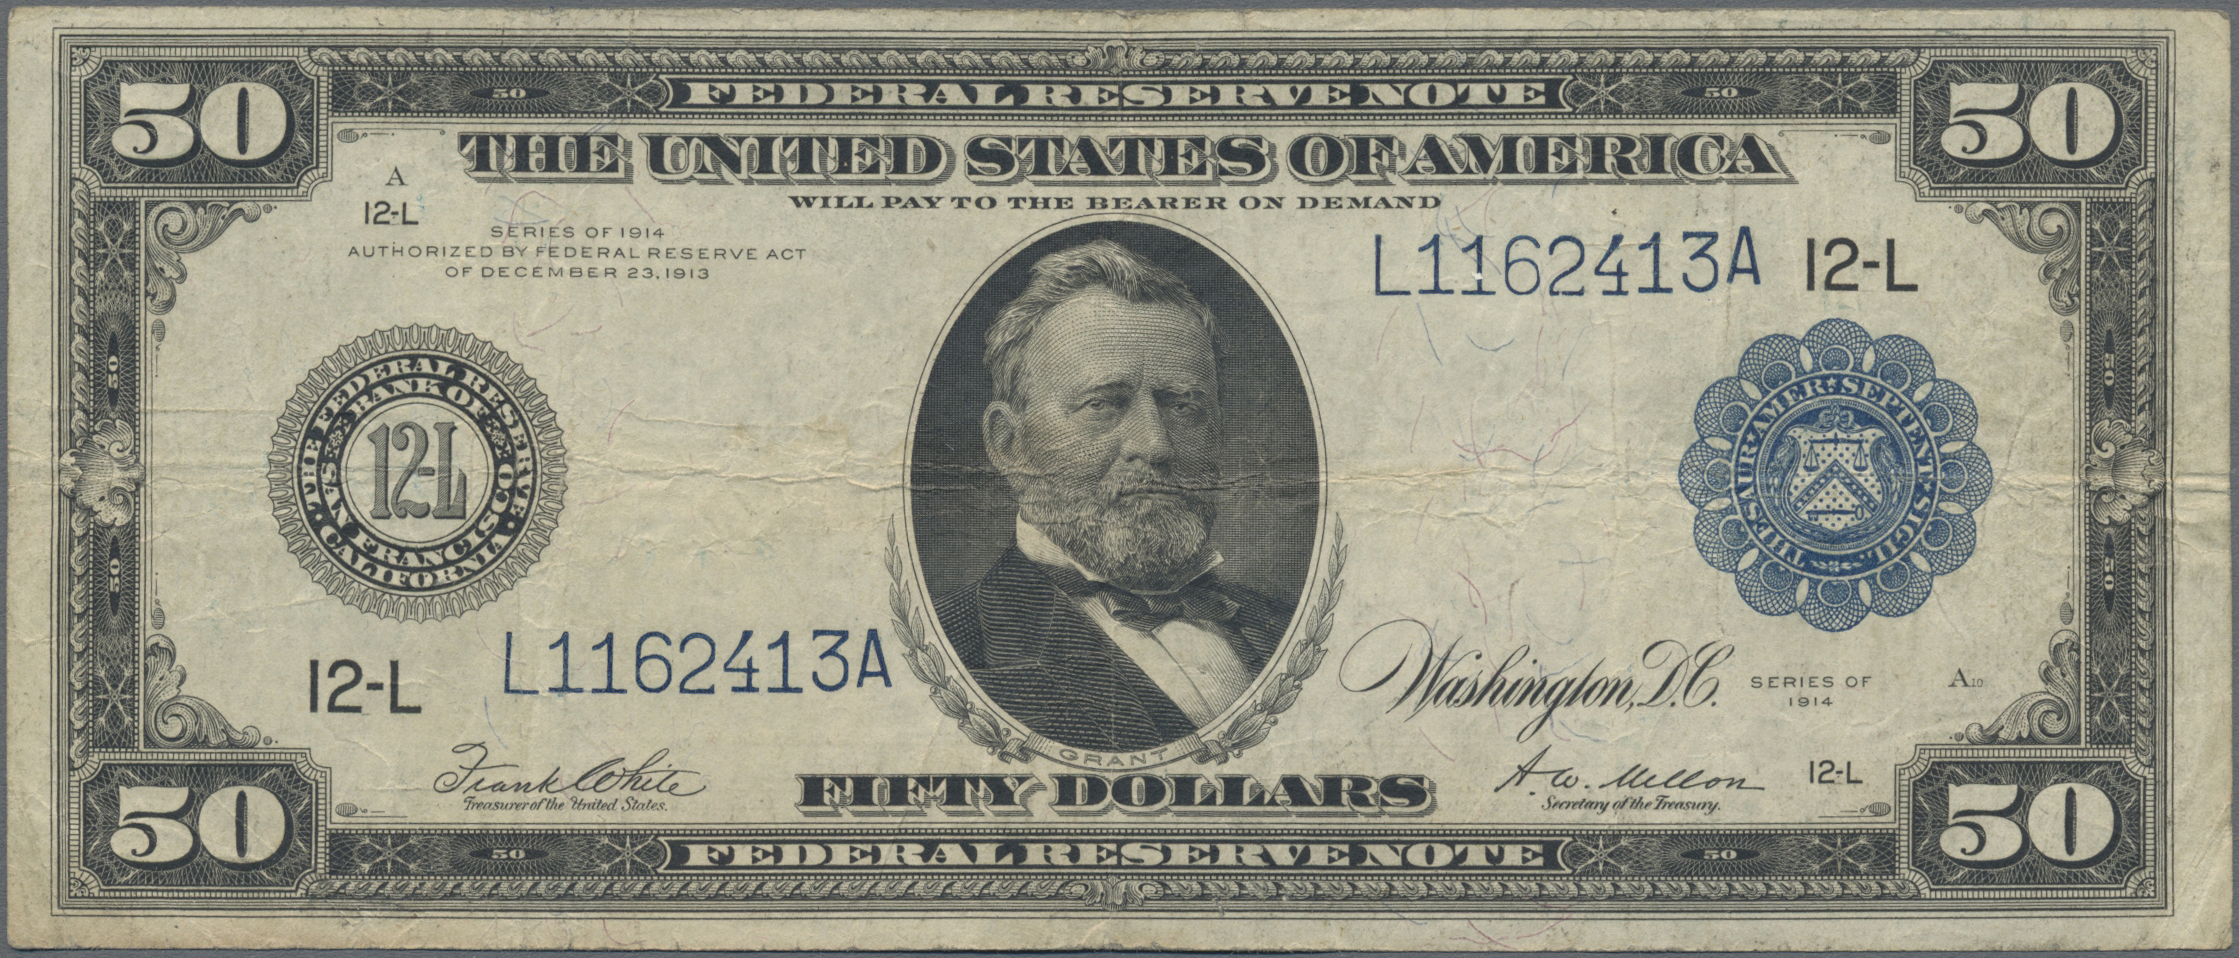 Lot 00907 - United States of America | Banknoten  -  Auktionshaus Christoph Gärtner GmbH & Co. KG Sale #48 The Banknotes